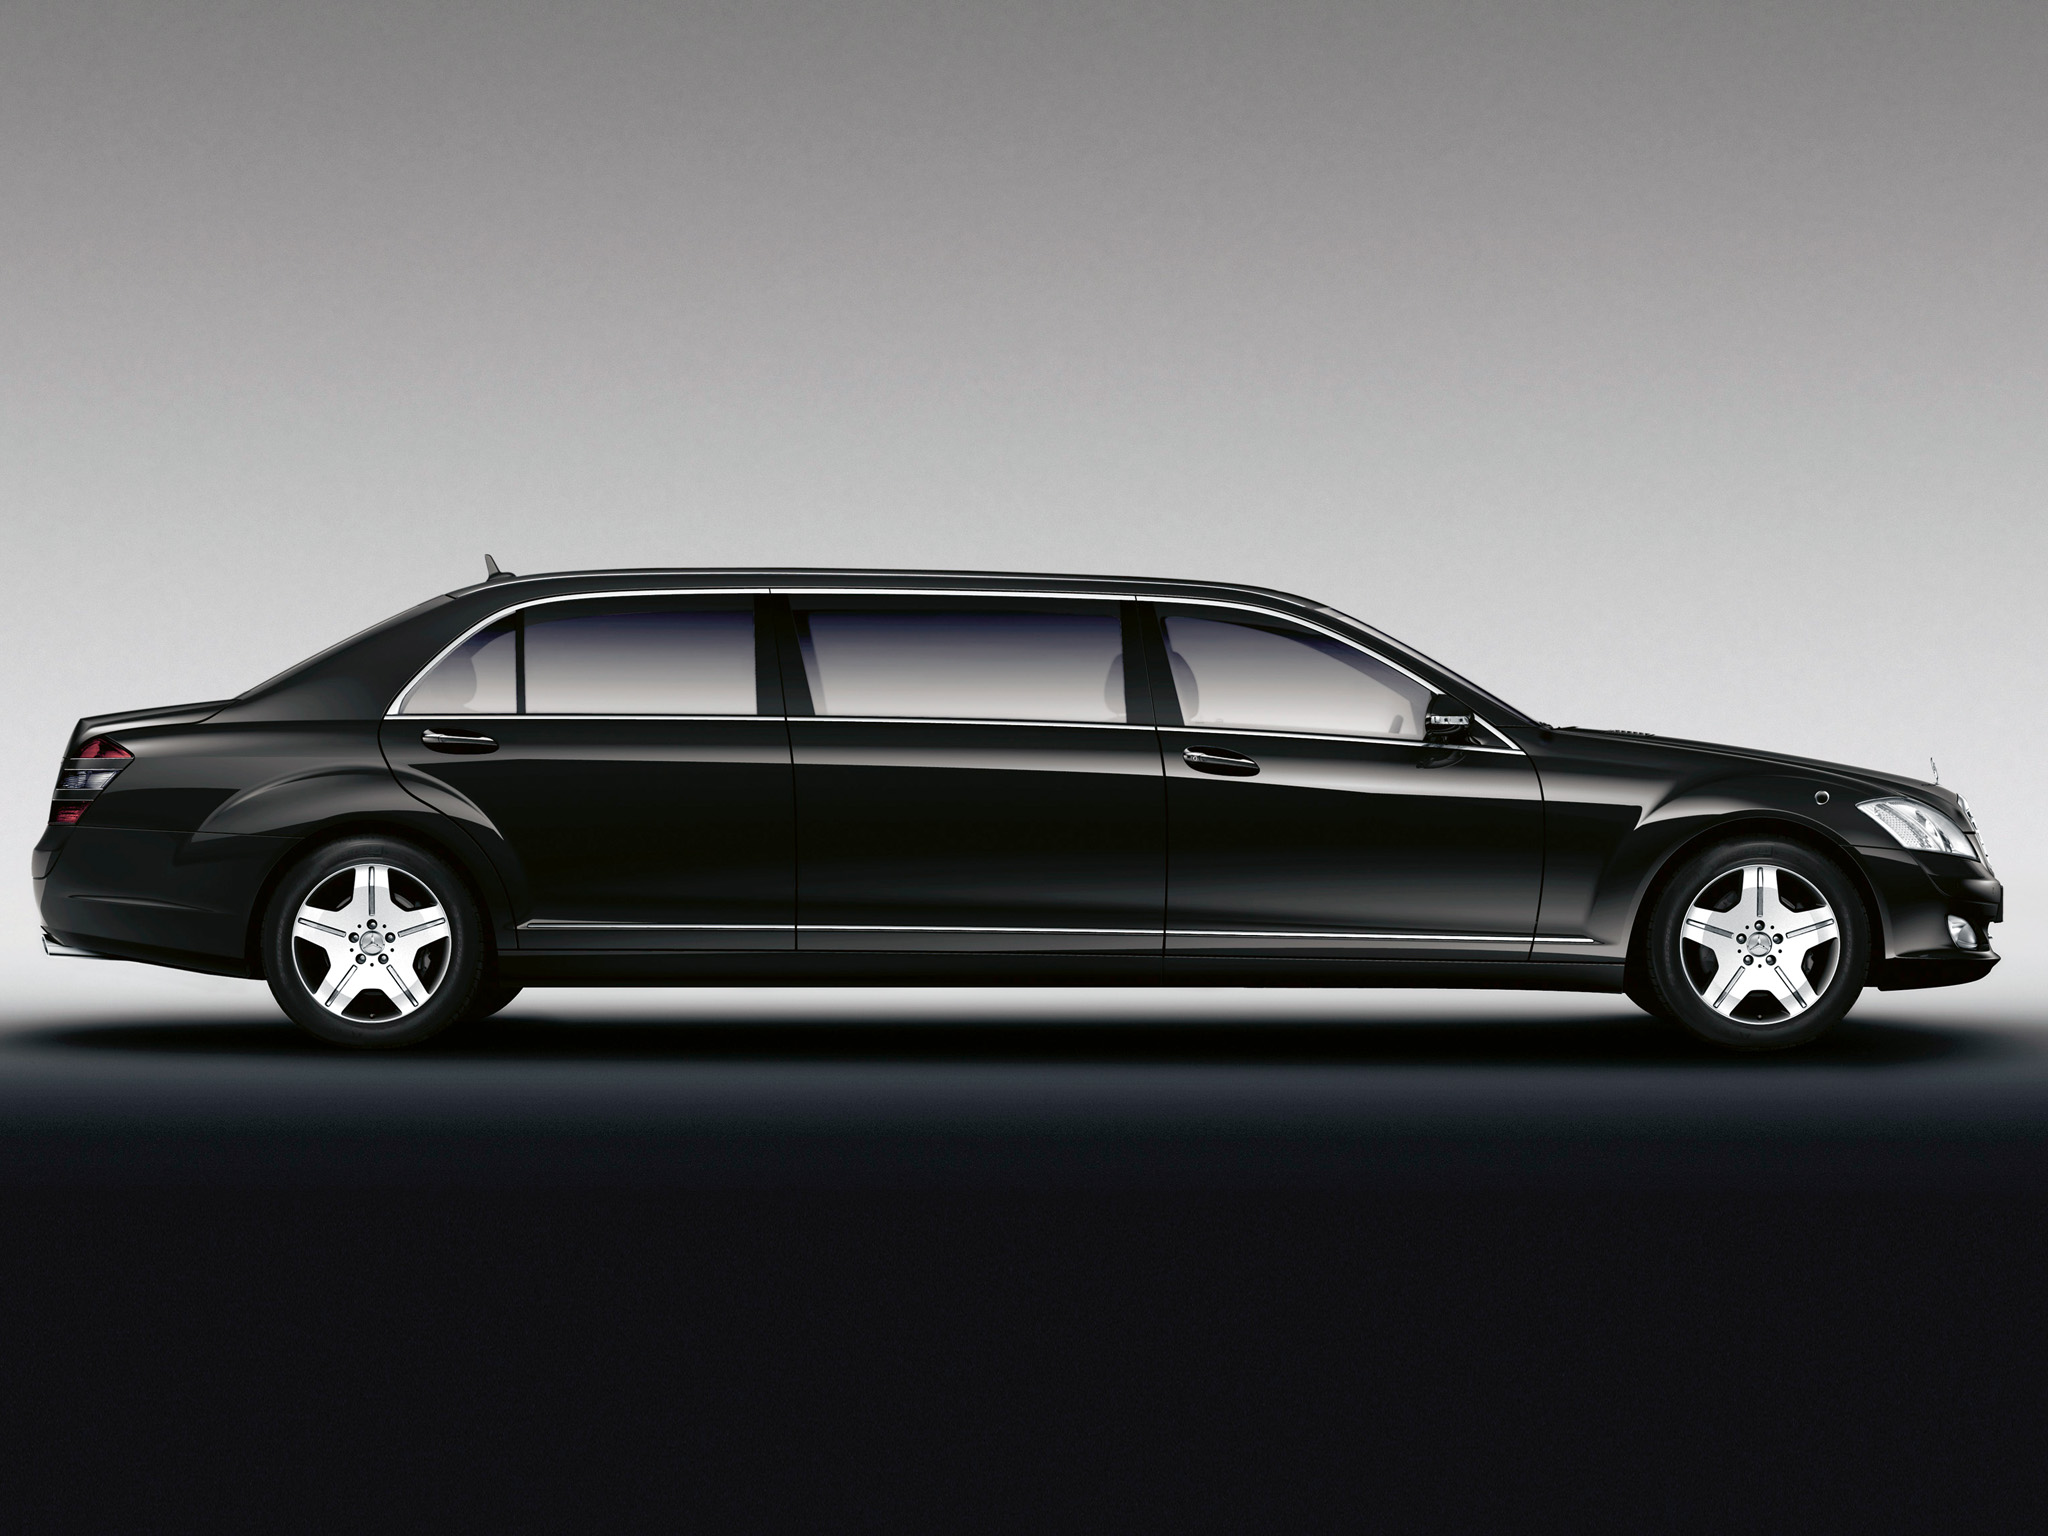 2008 armored mercedes benz s 600 guard pullman w221 luxury for 2008 mercedes benz s600